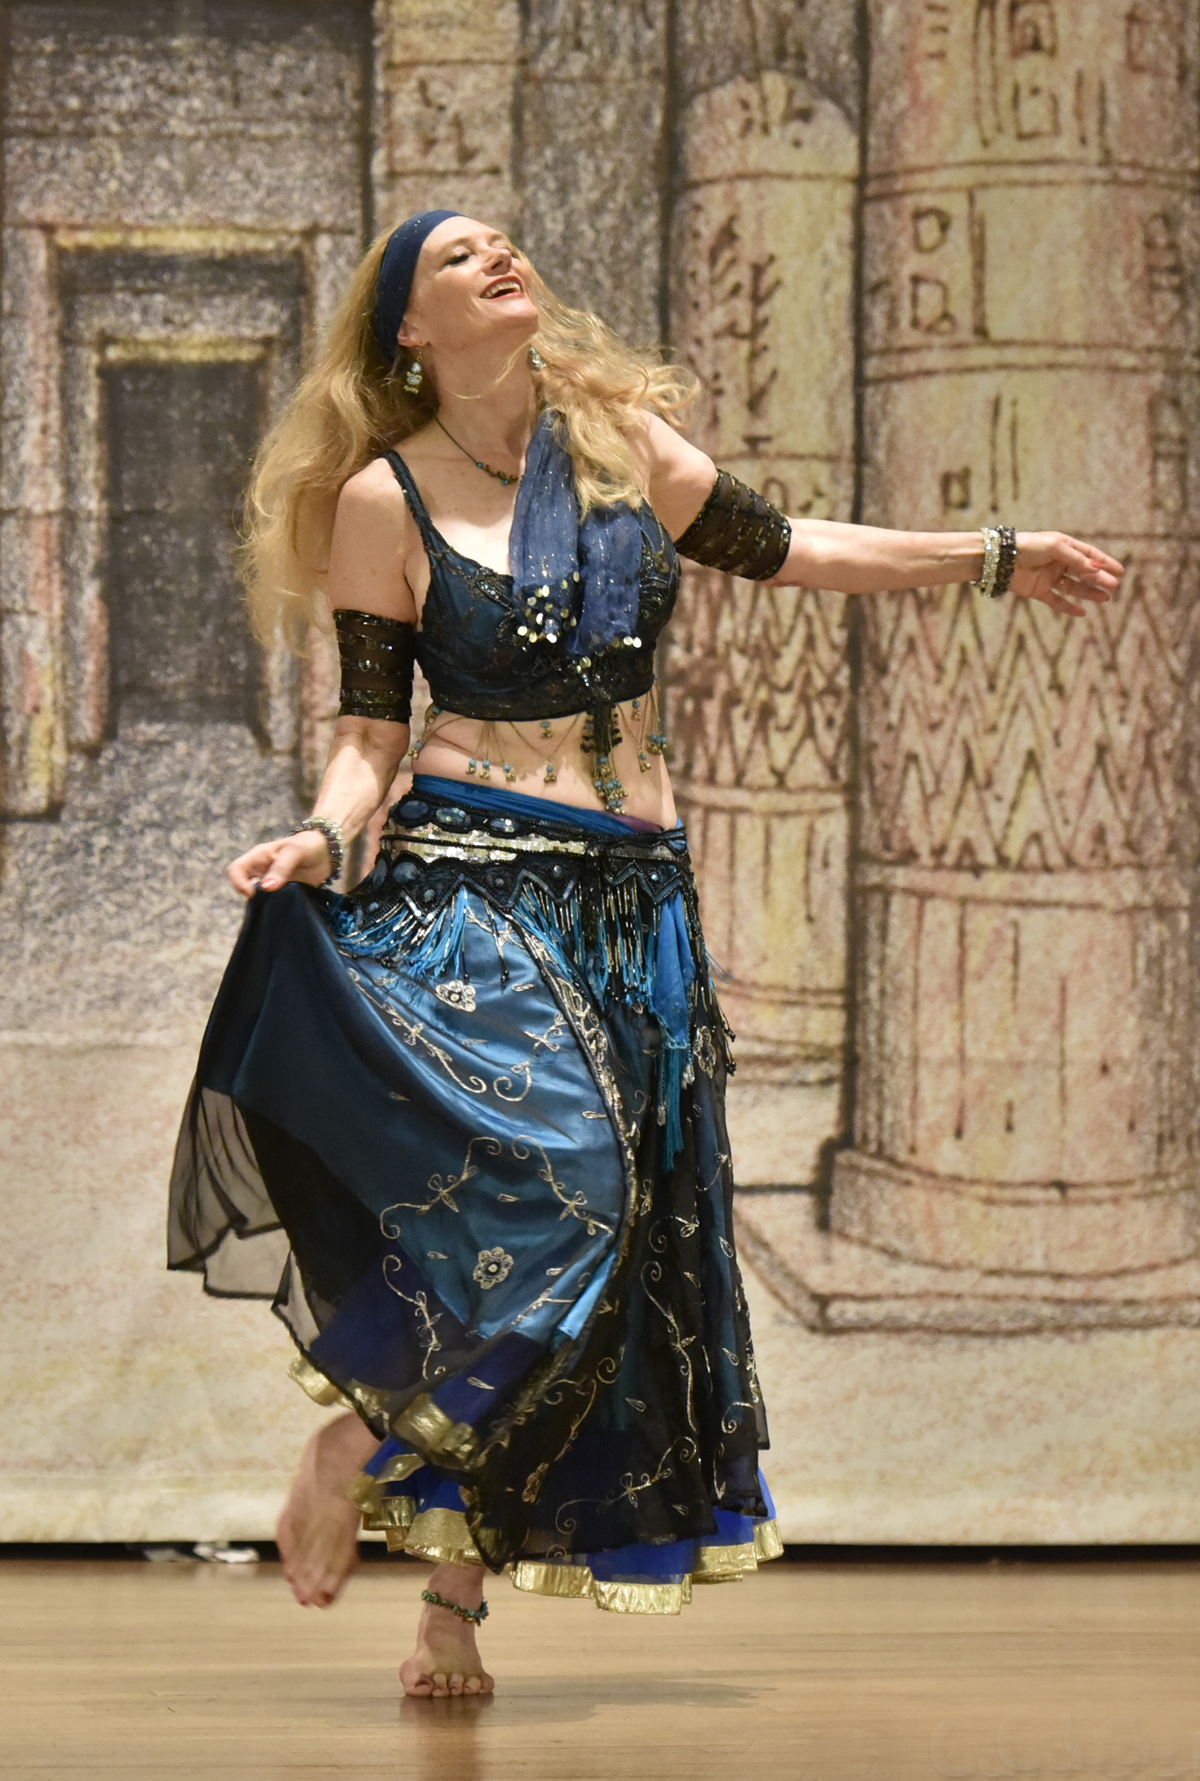 Woman with long blonde hair belly dancing